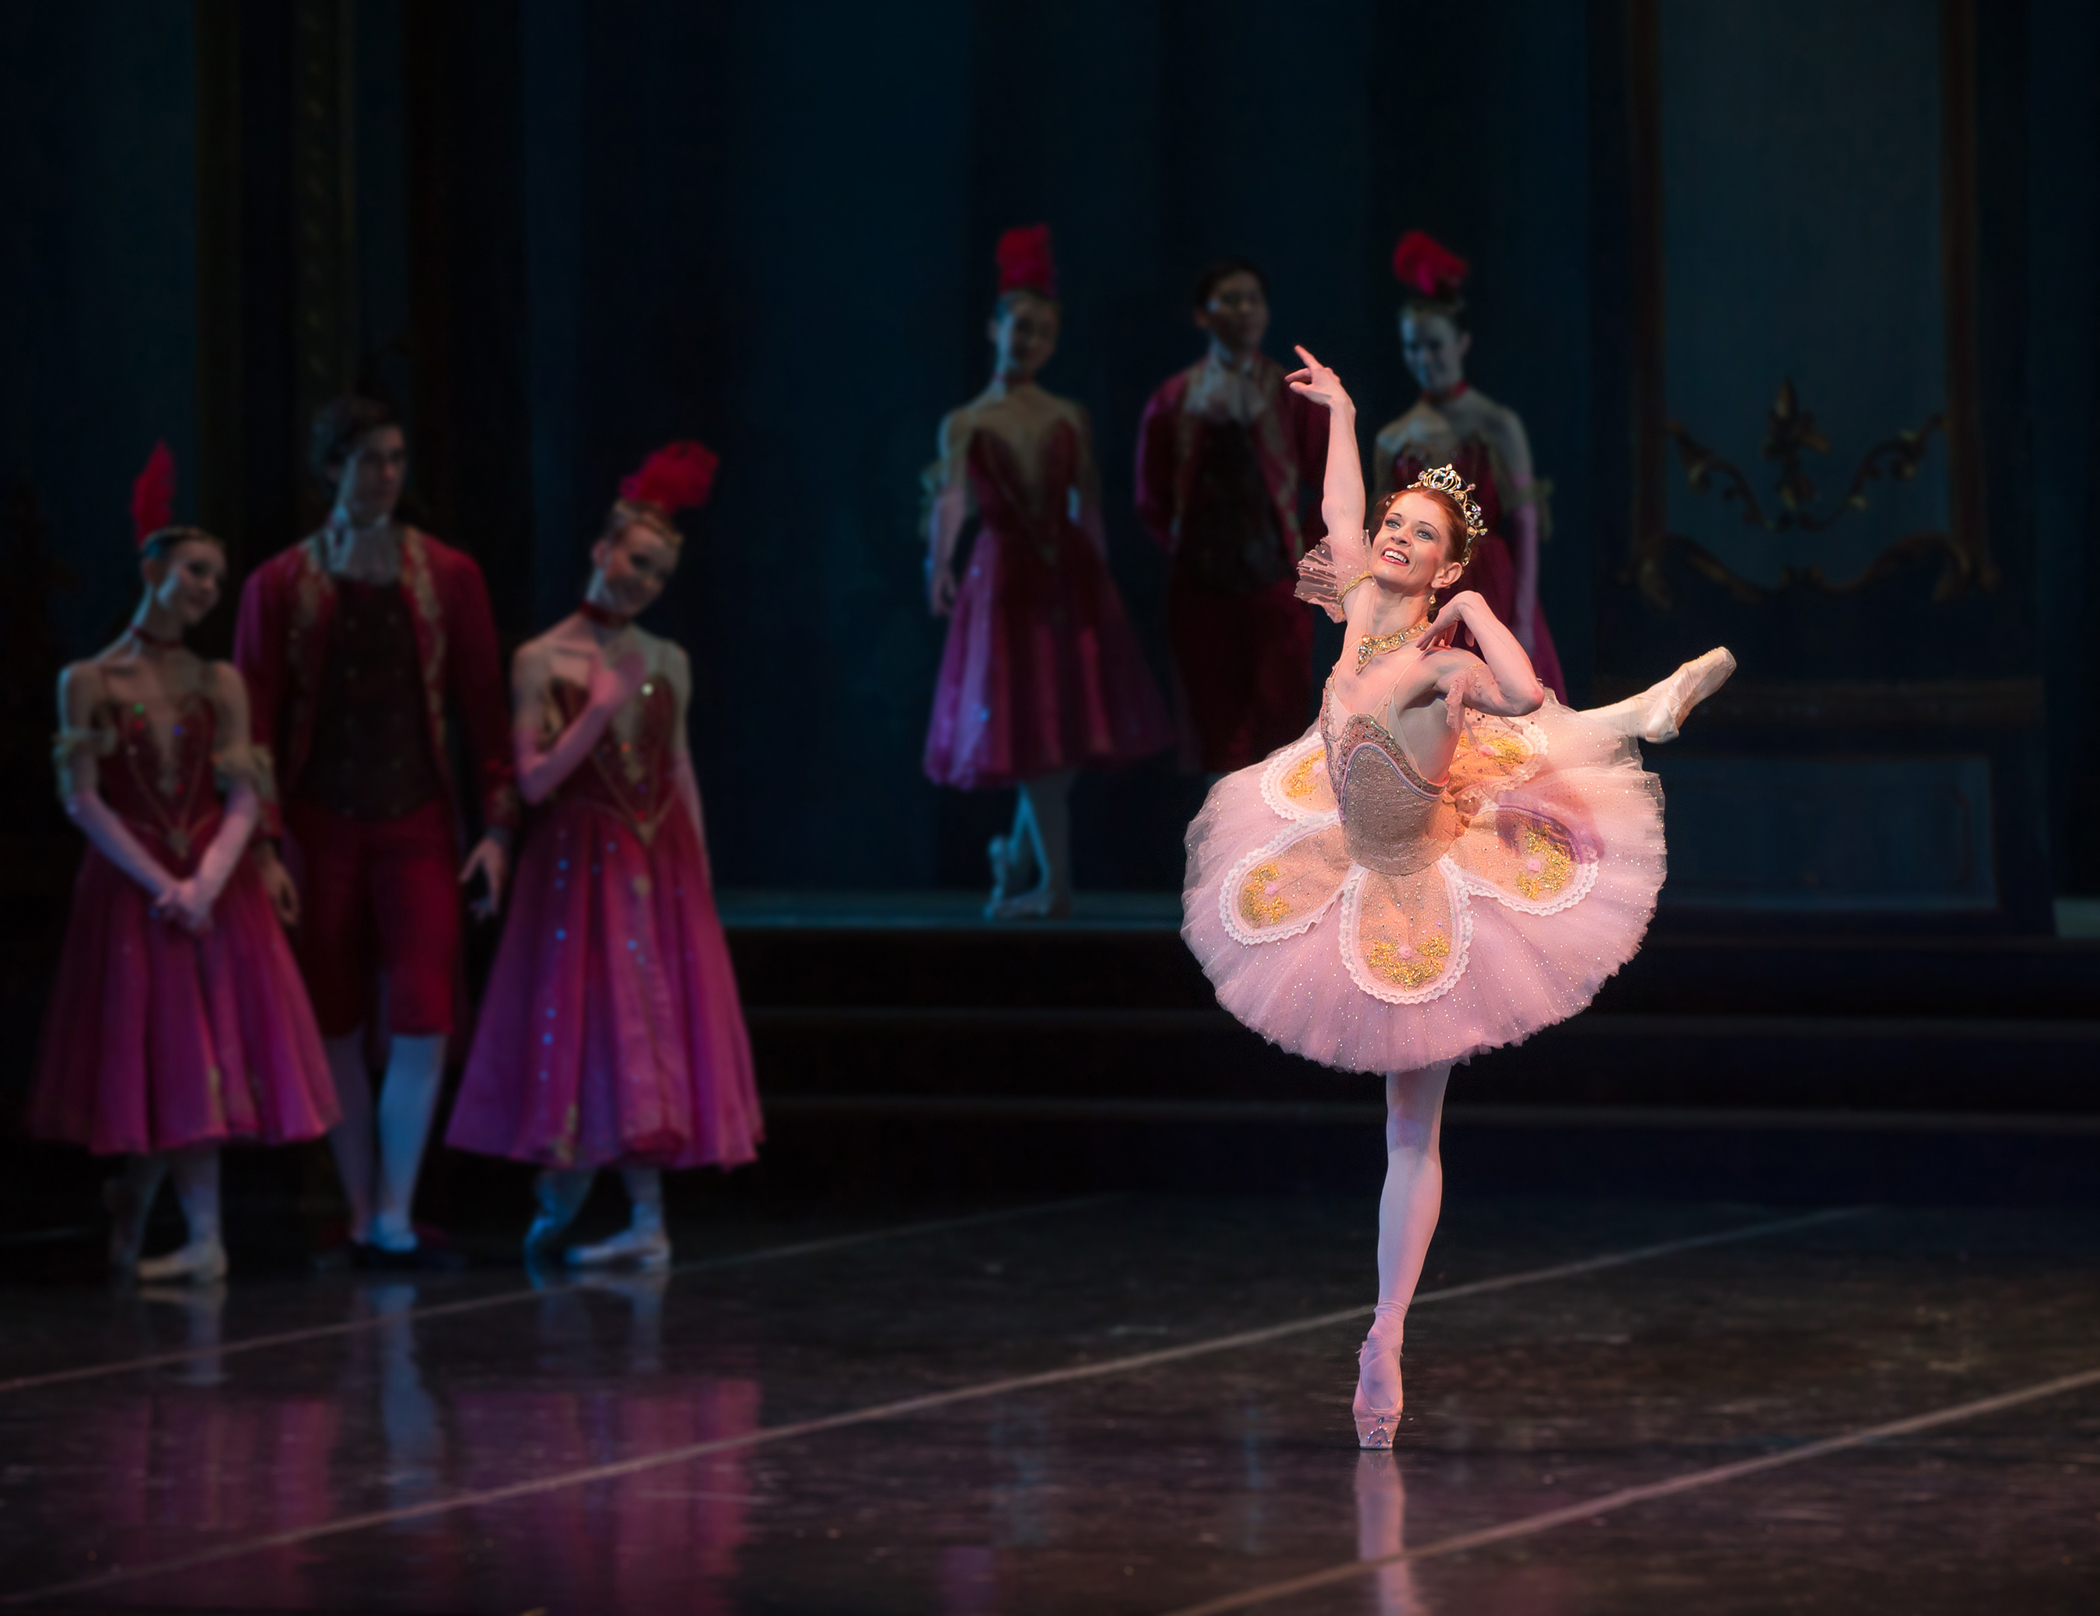 Maria Mosina in Cinderella ballroom scene - photo by Mike Watson